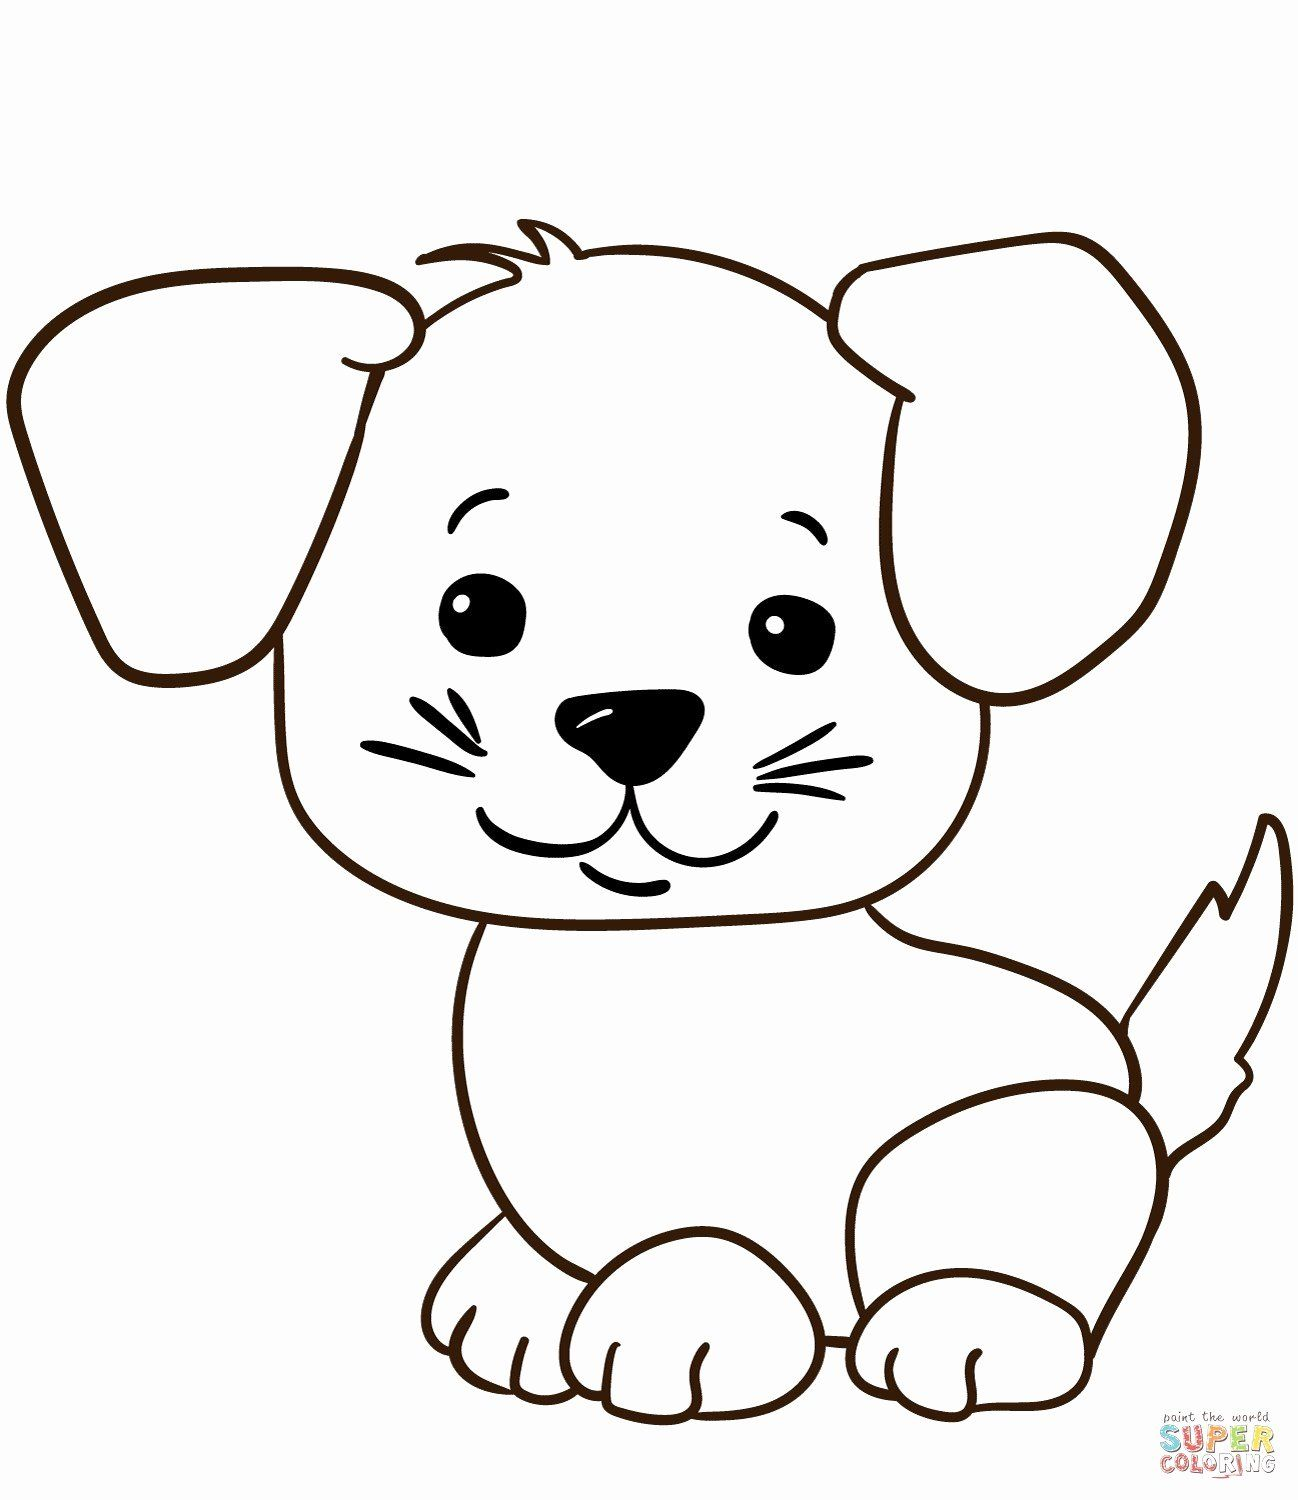 Adorable Animal Coloring Pages Unique Beautiful Cute Cartoon Puppy Coloring Pages Howtobeaweso In 2020 Puppy Coloring Pages Dog Coloring Page Animal Coloring Pages